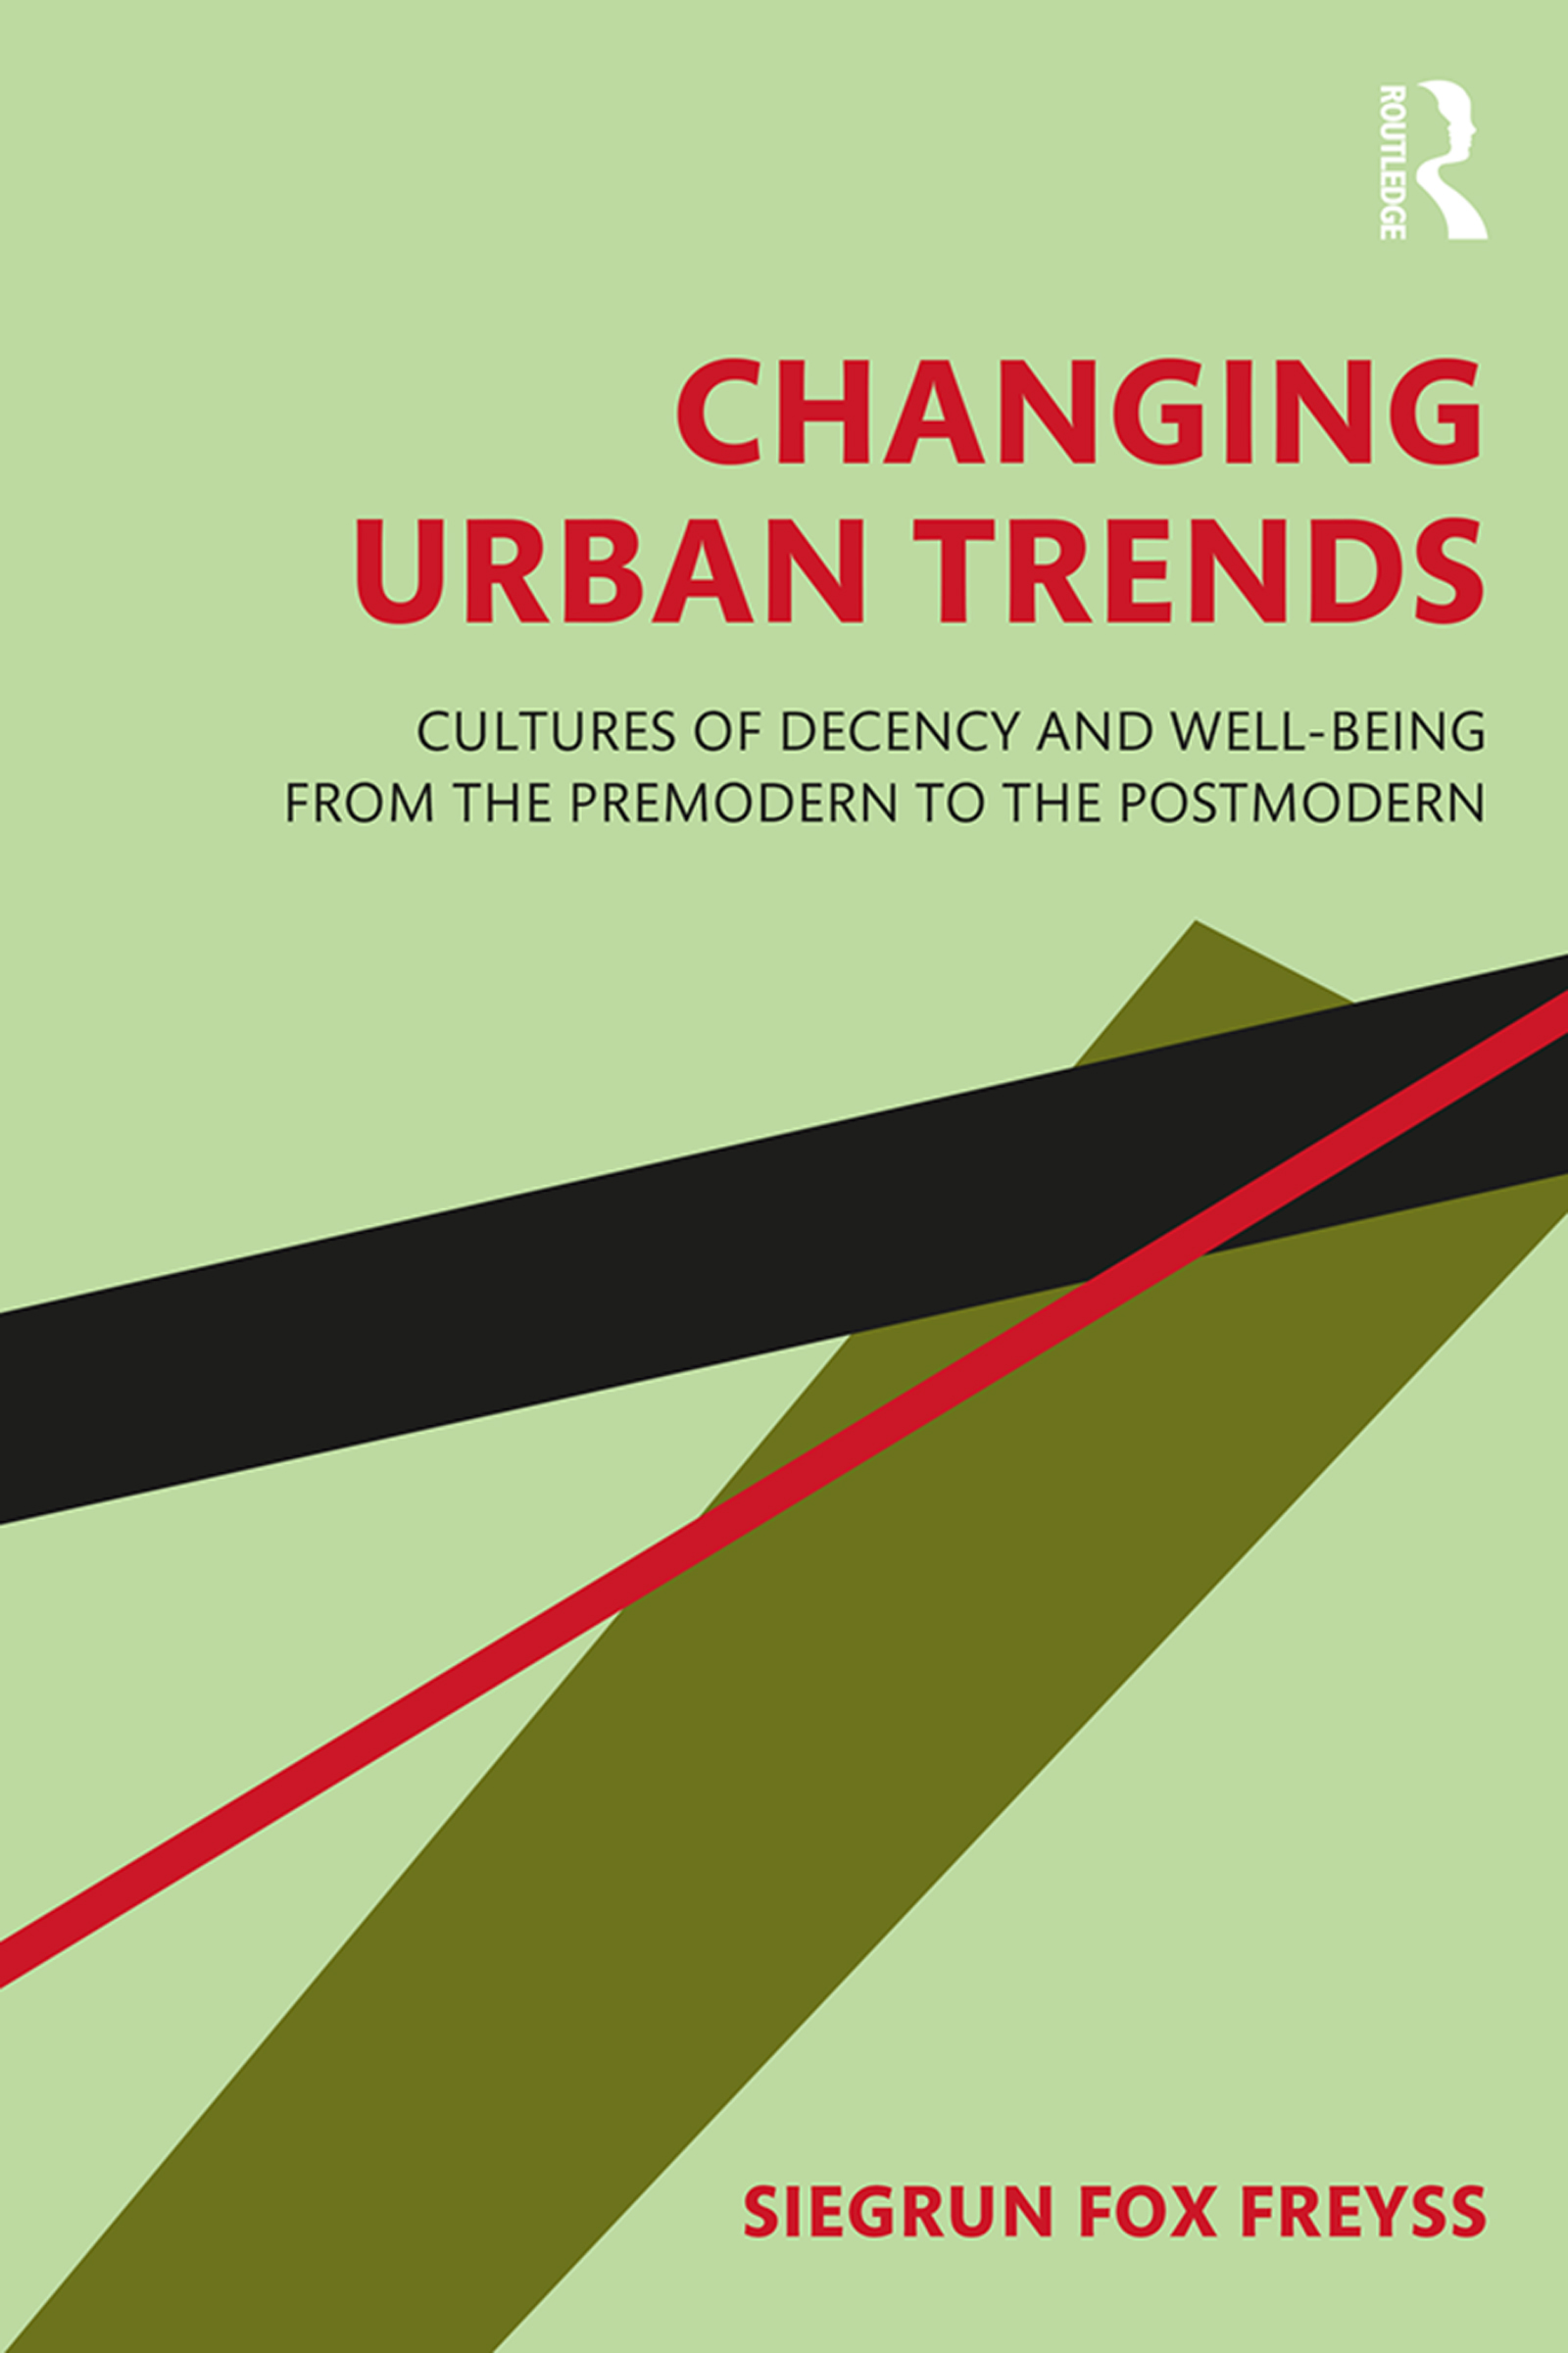 Changing Urban Trends: Cultures of Decency and Well-being from the Premodern to the Postmodern book cover